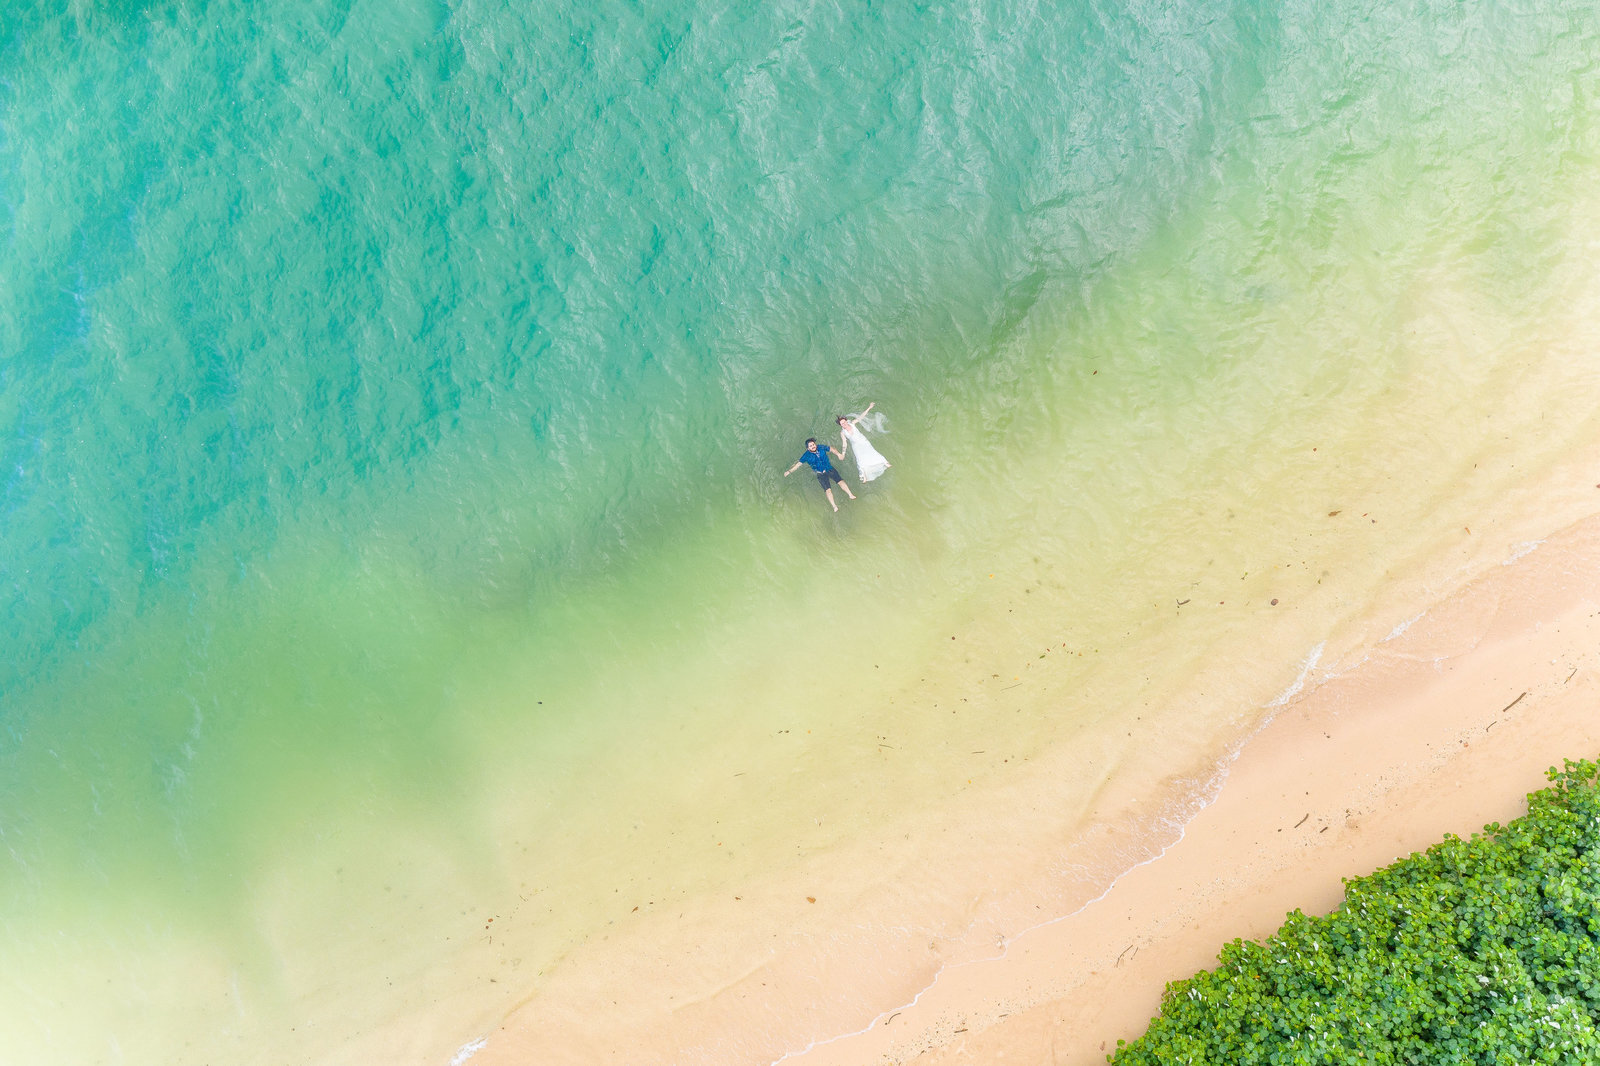 hawaiidronephotography